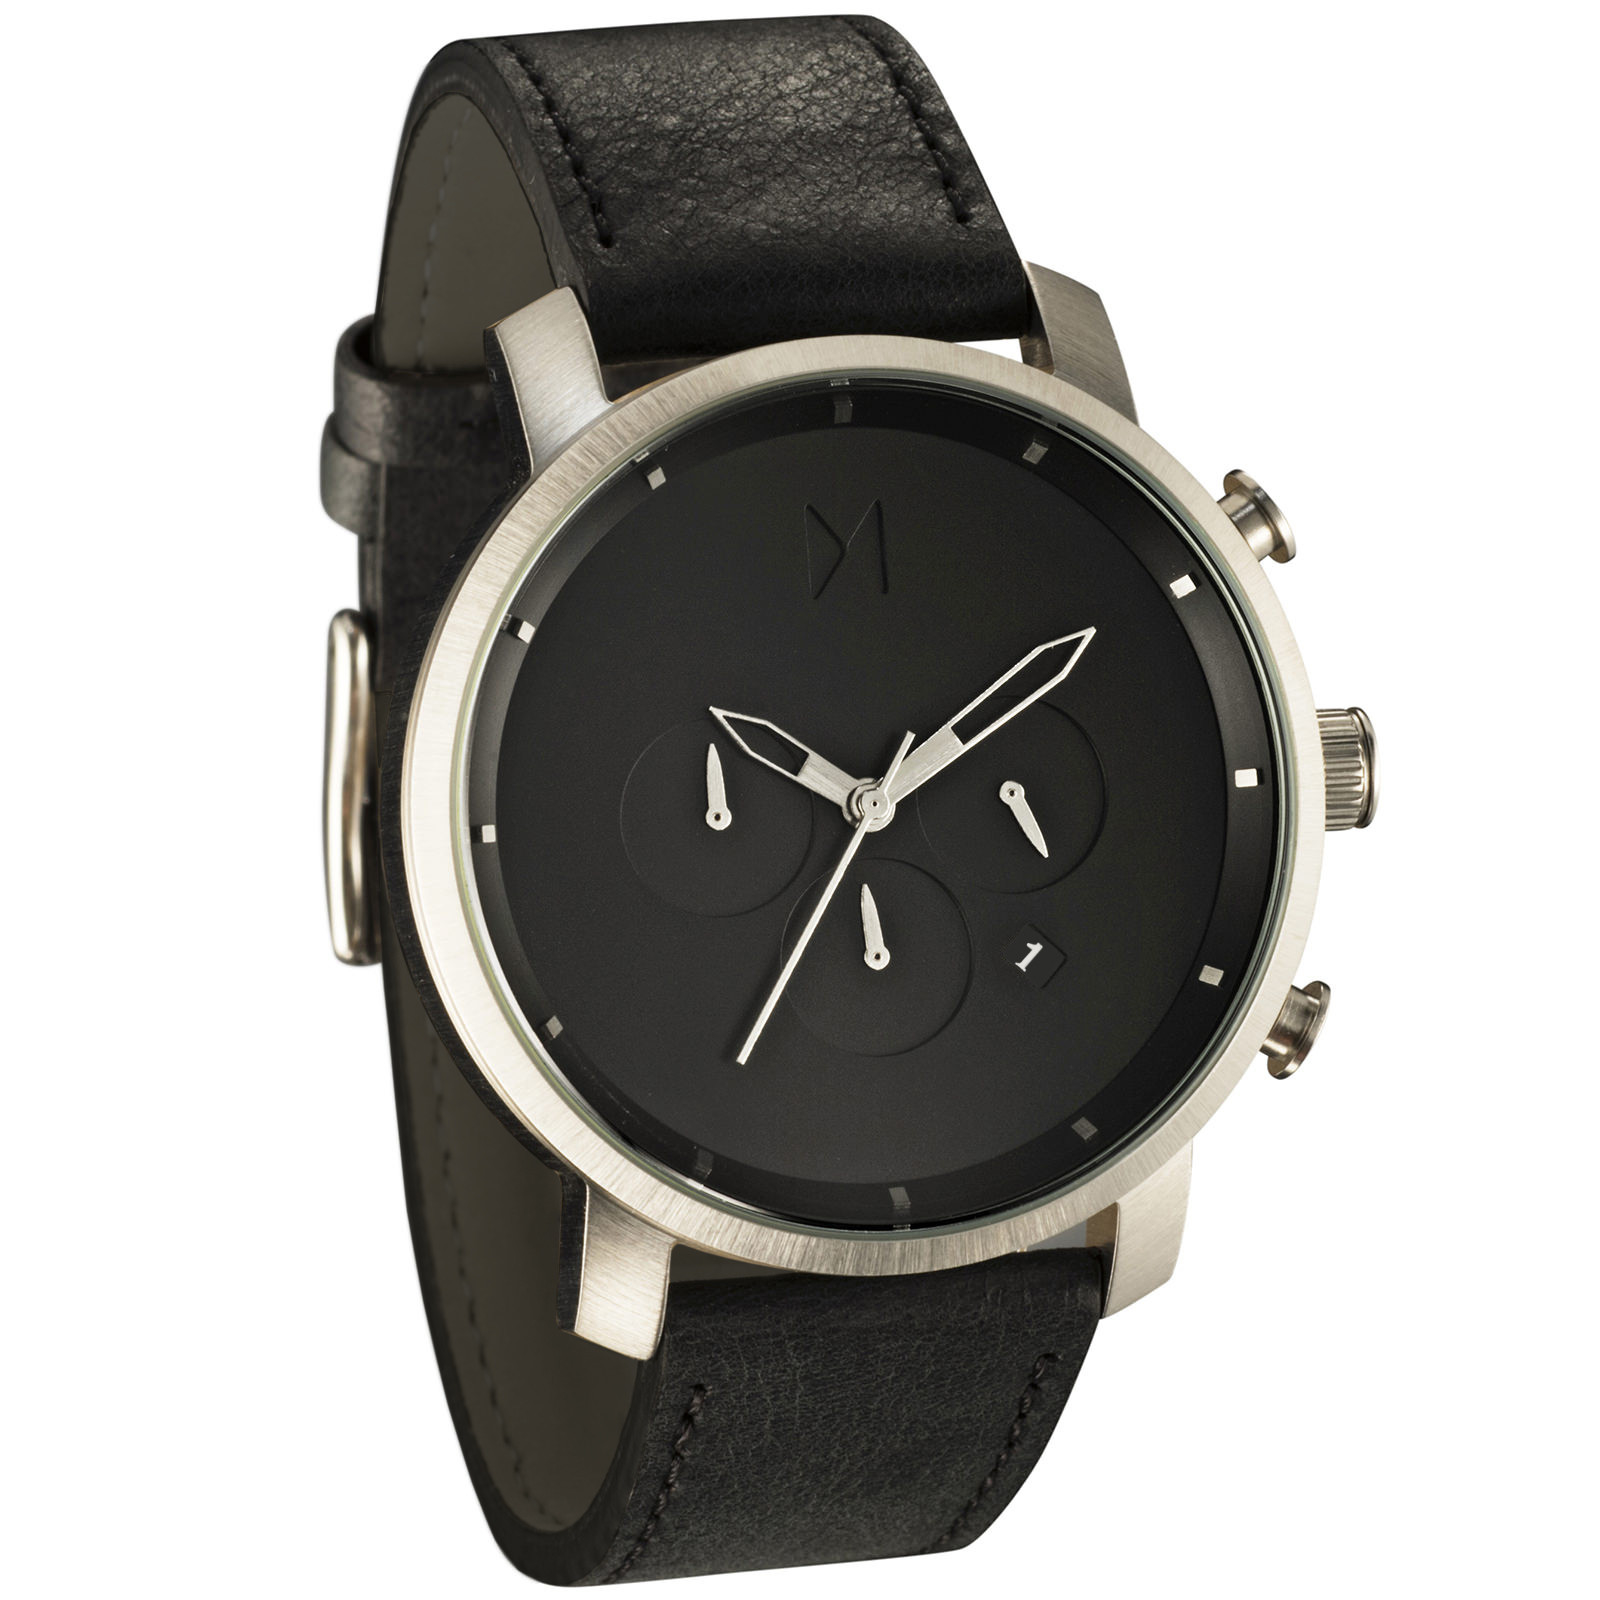 Mvmt watches chrono silver black leather in multicolor for men default title lyst for Mvmt watches